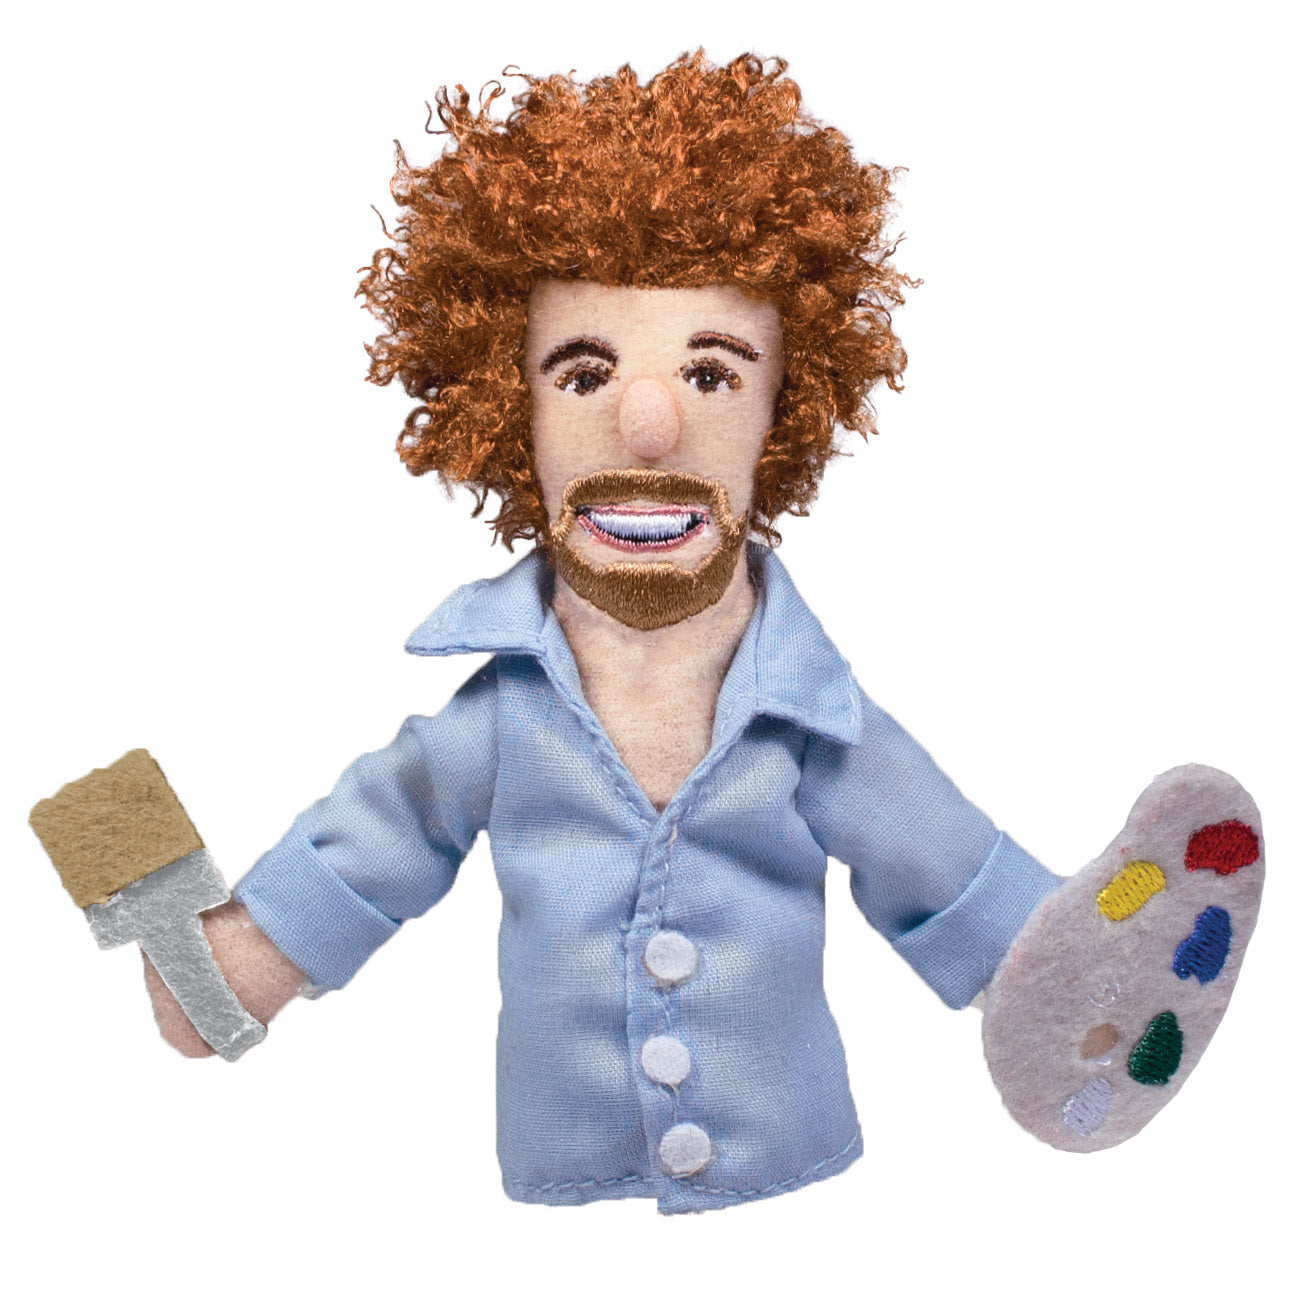 Bob Ross Magnetic Personality - The Unemployed Philosophers Guild